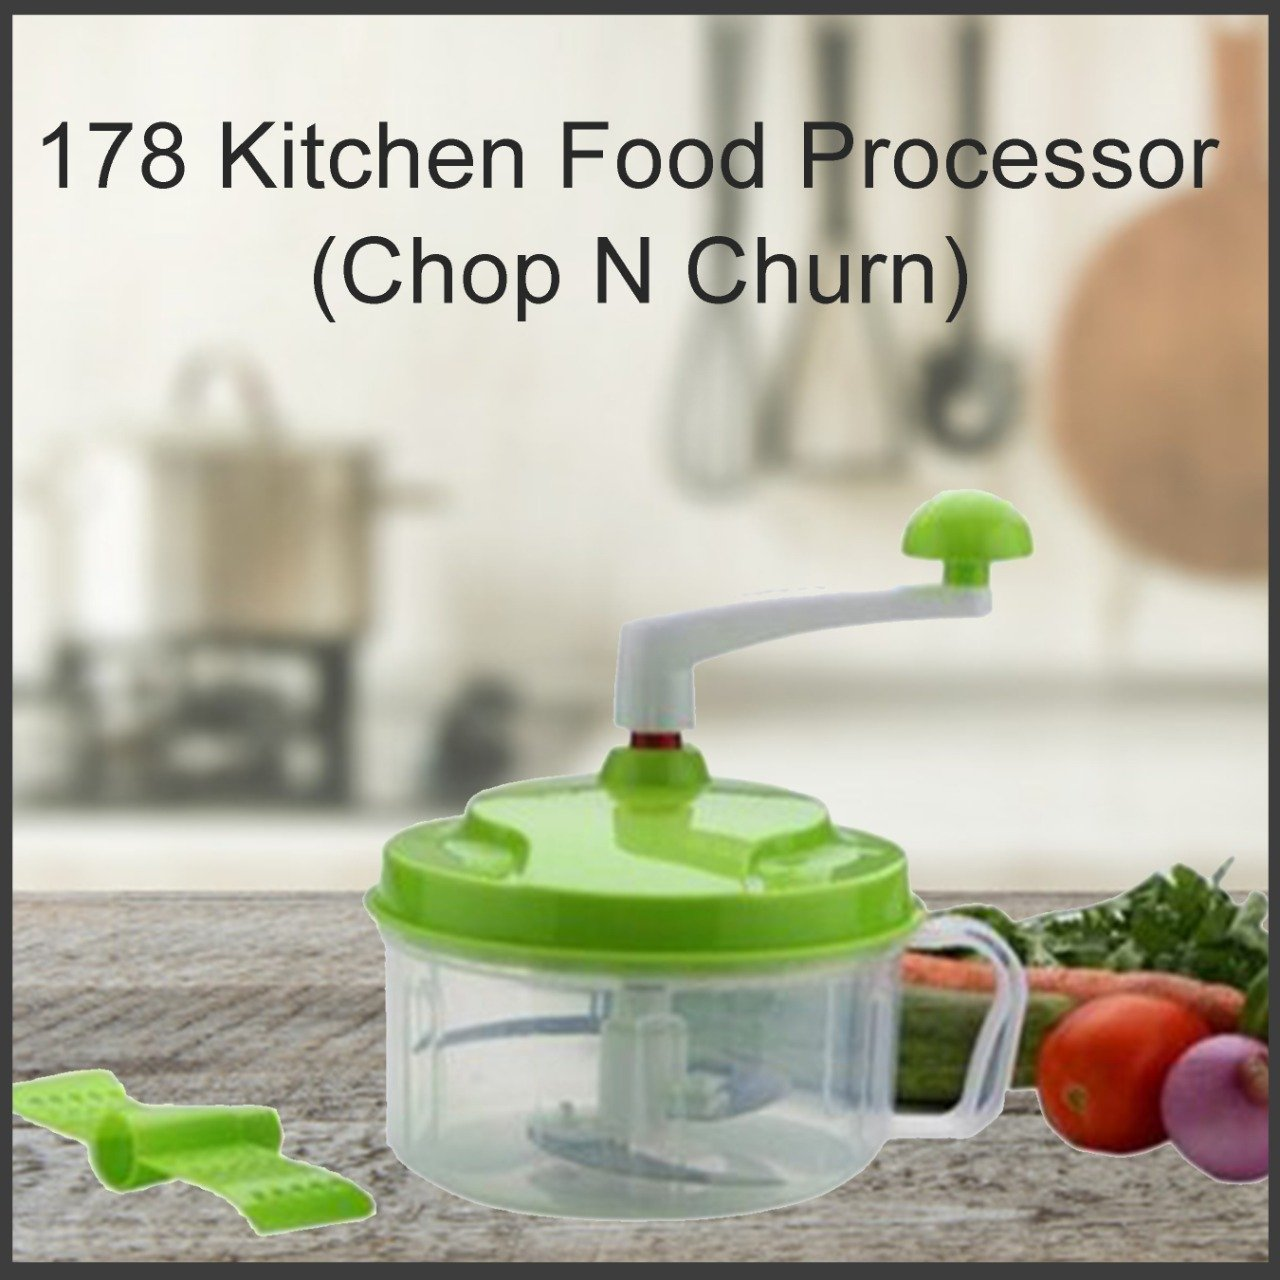 Kitchen Food Processor (Chop N Churn)